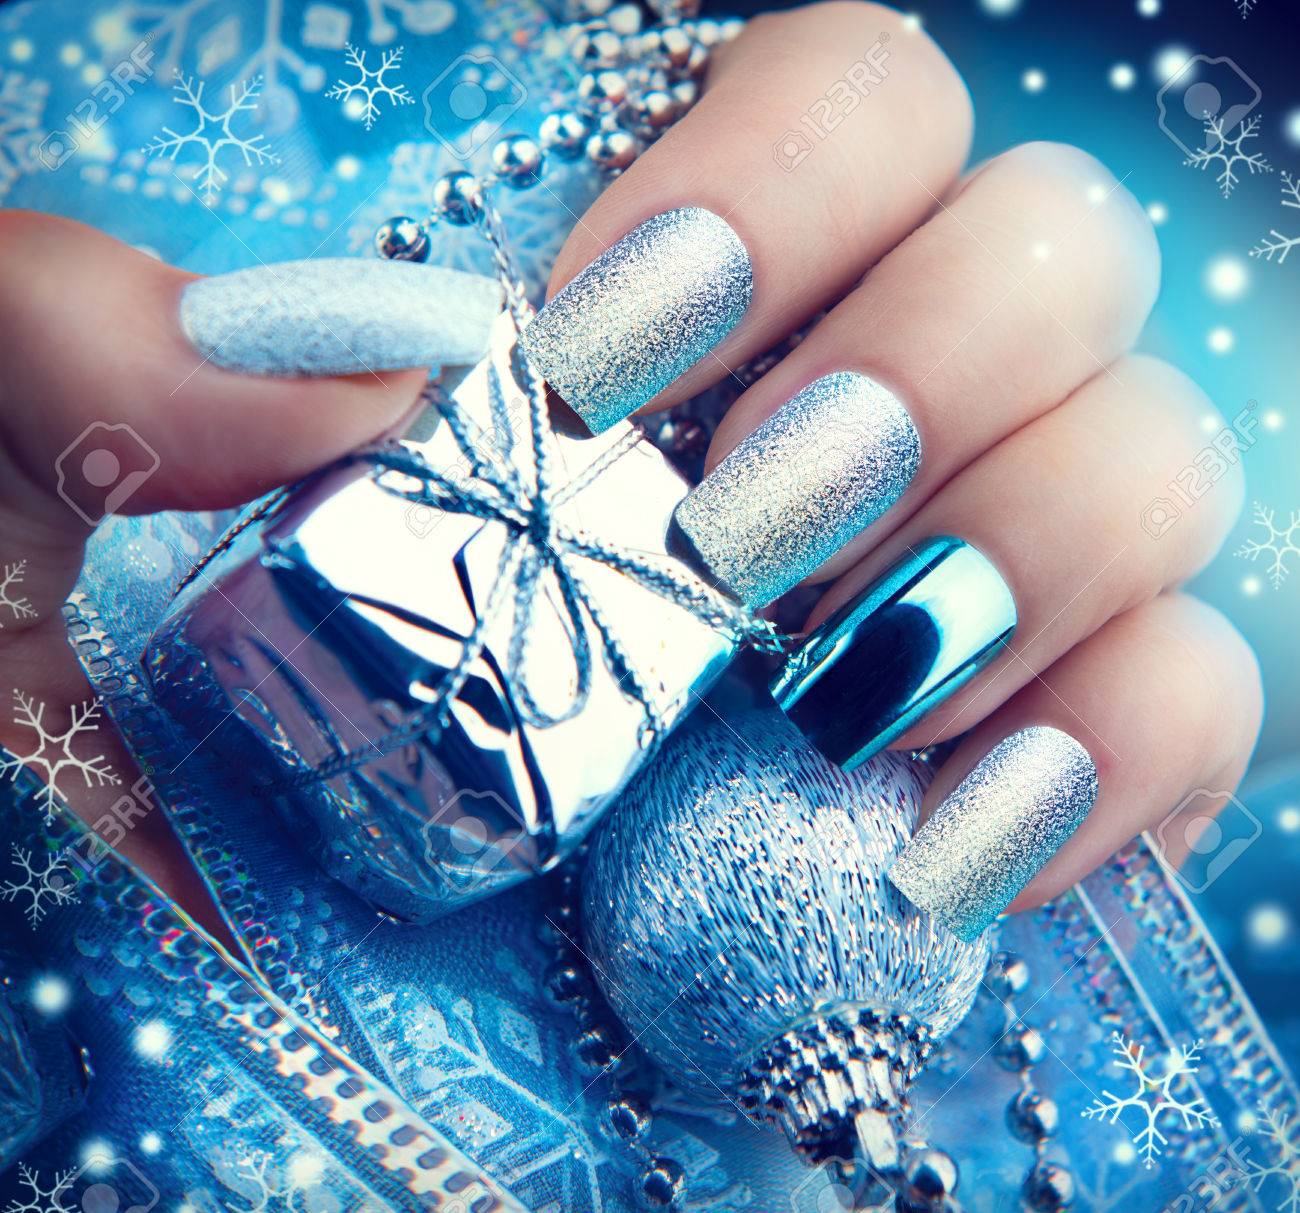 Christmas Nail Art Manicure Winter Holiday Style Bright Design Stock Photo